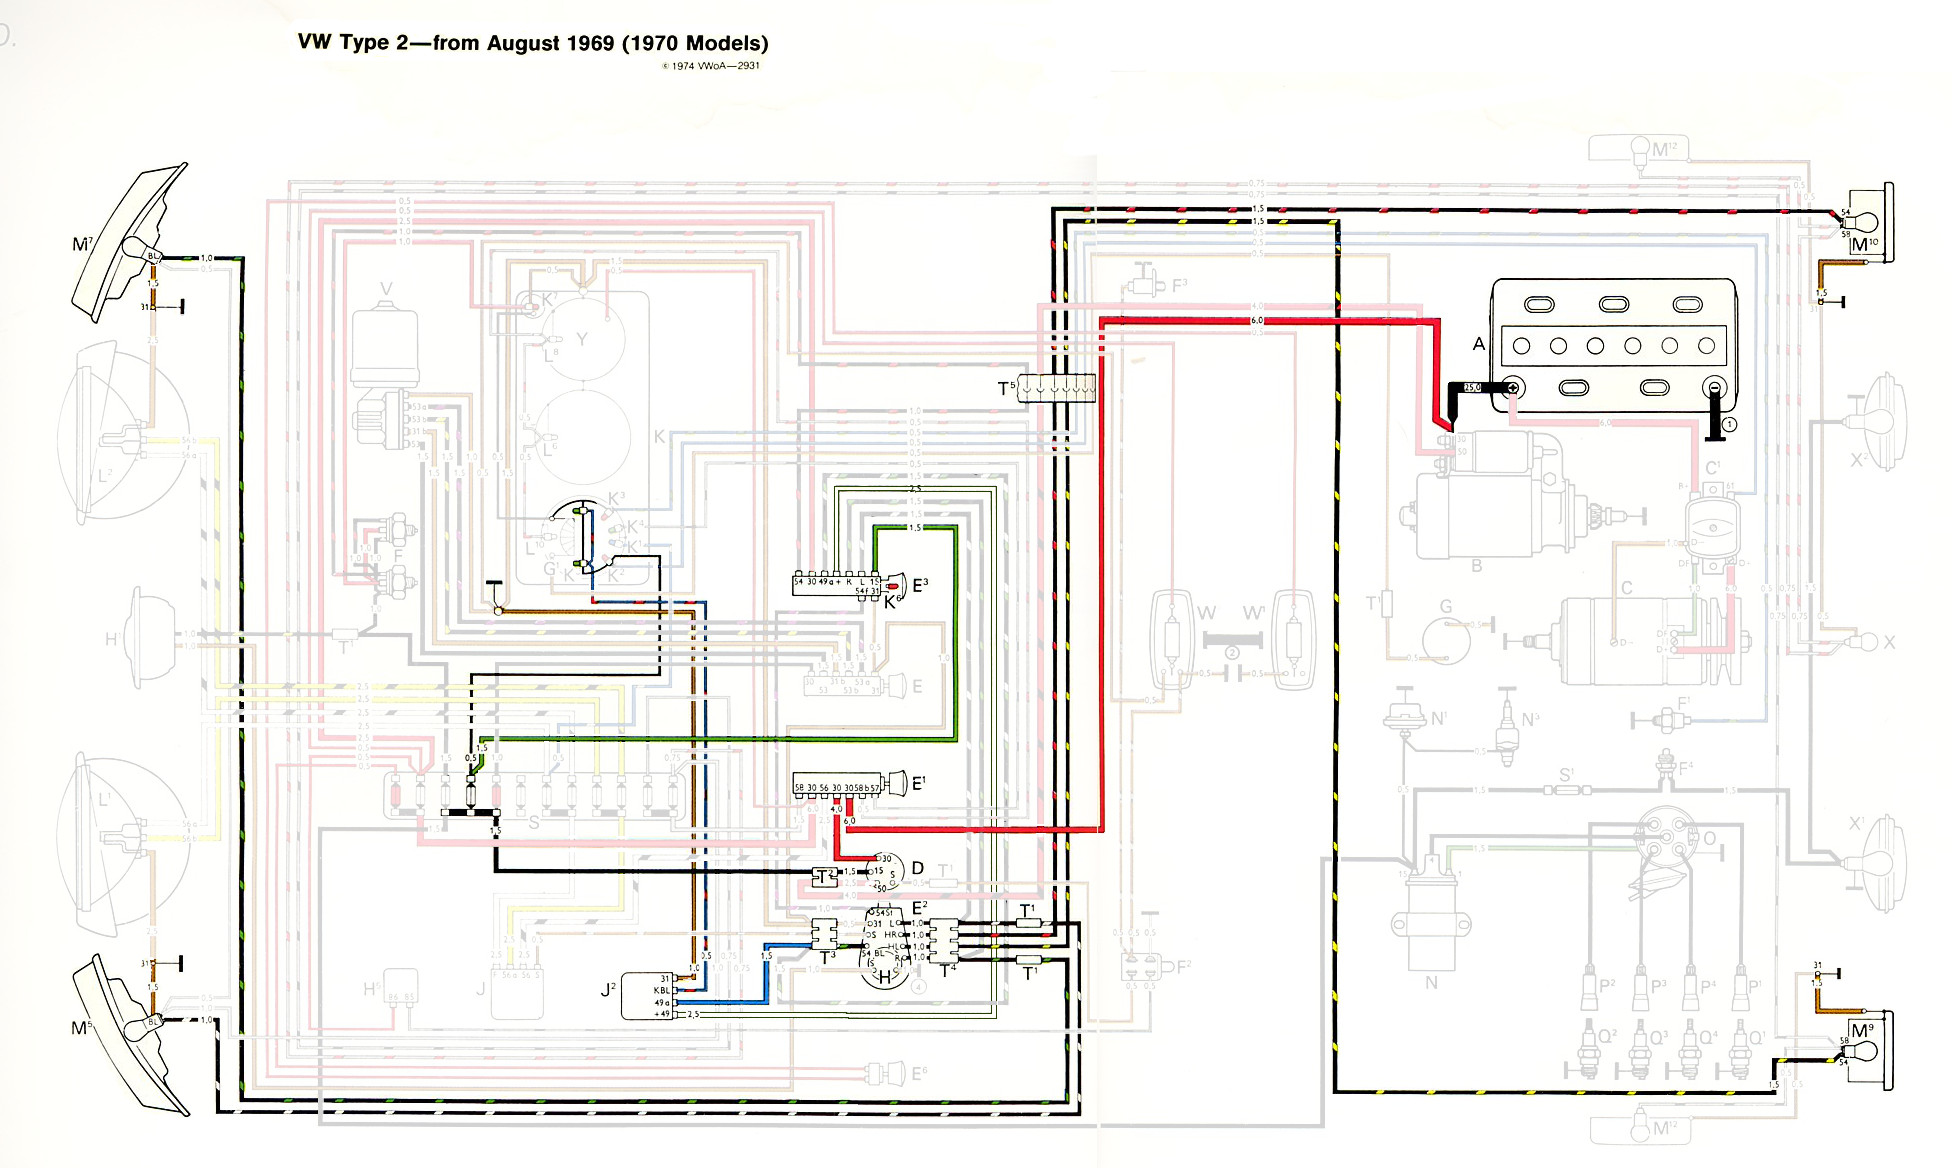 1970bus_signals thesamba com type 2 wiring diagrams wire diagram for radio at mifinder.co